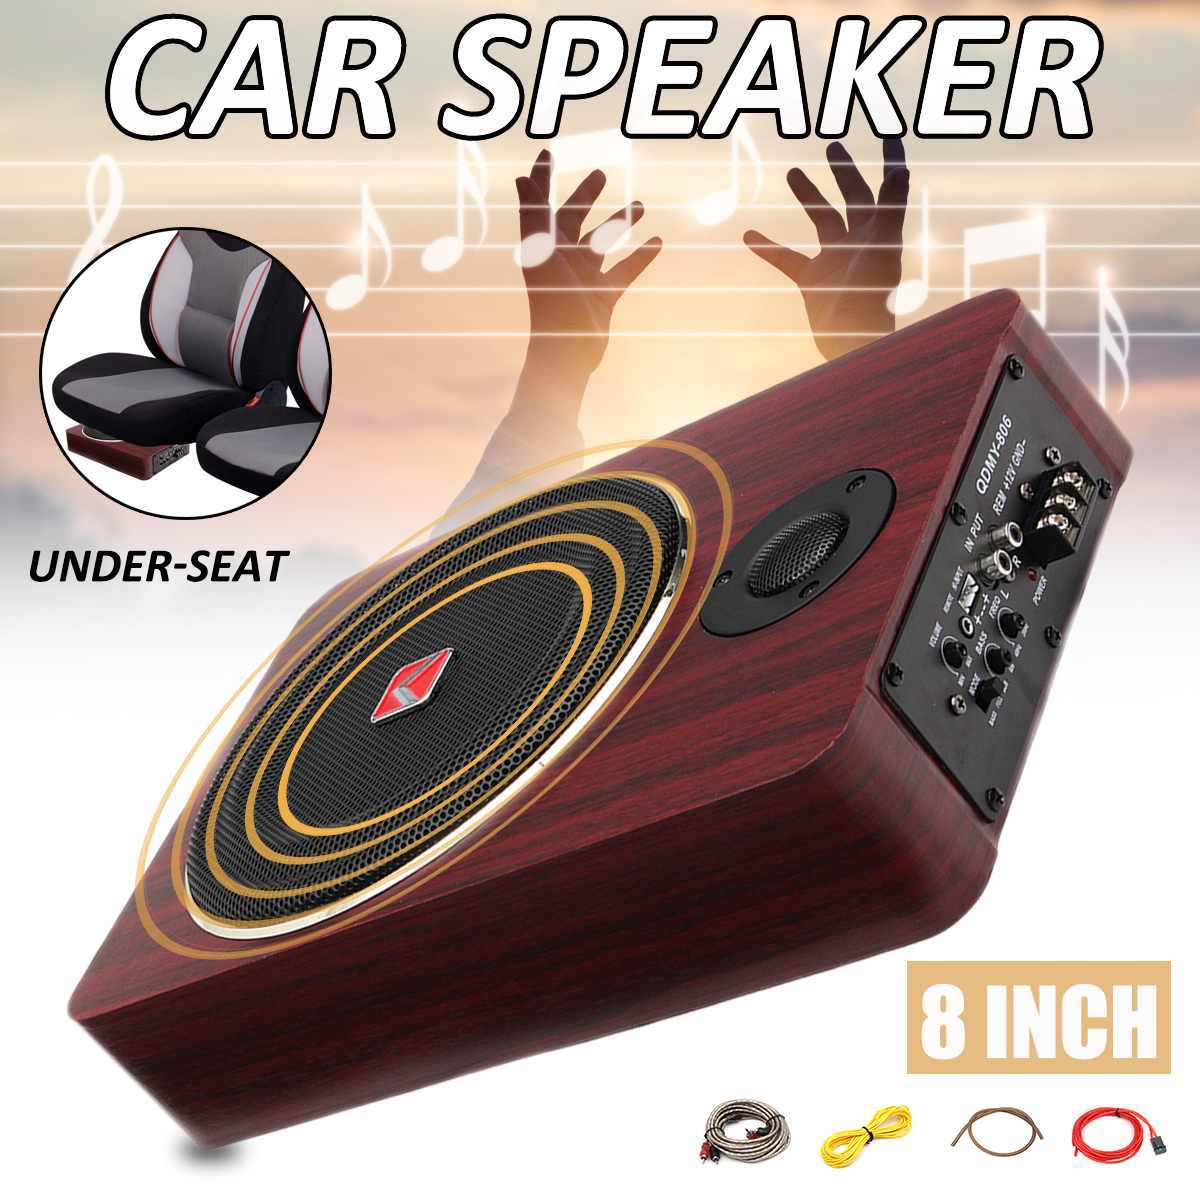 8 inch 600W Wooden Active Power Car Amplifier Subwoofers Speaker Under Seat 12V Auto Truck Audio Stereo Brass Speakers